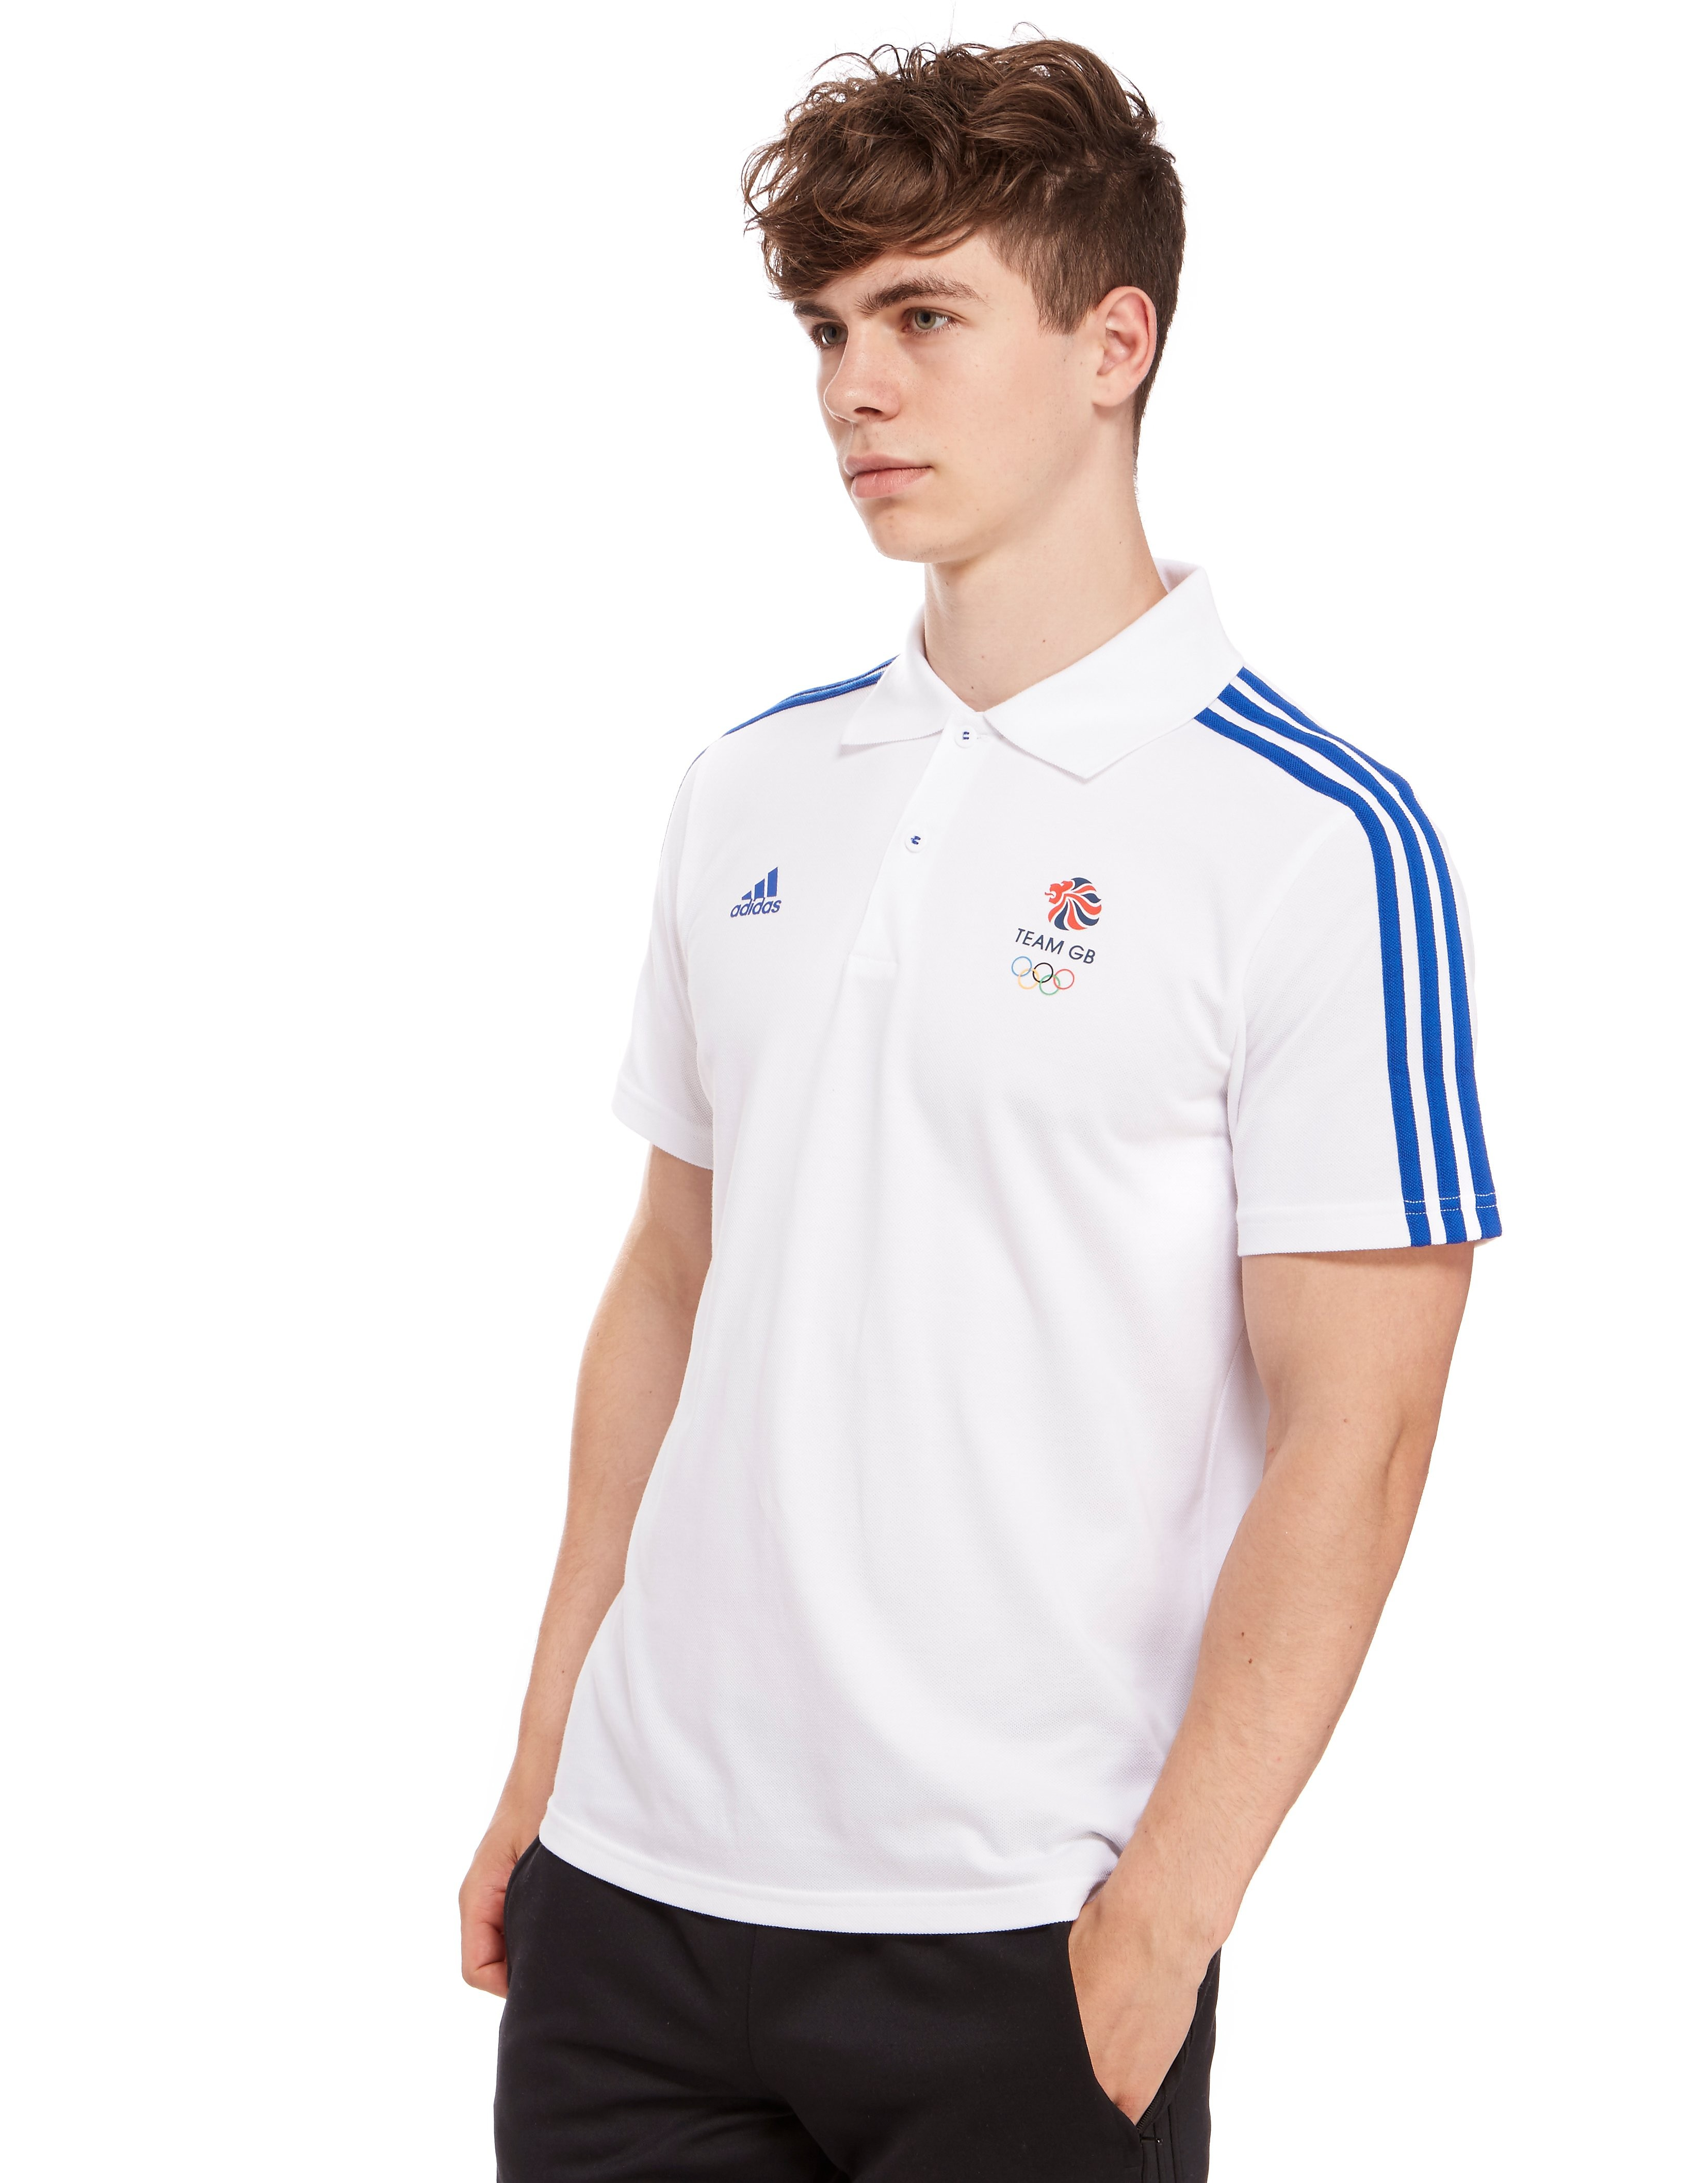 adidas Team GB Basic Logo Polo Shirt